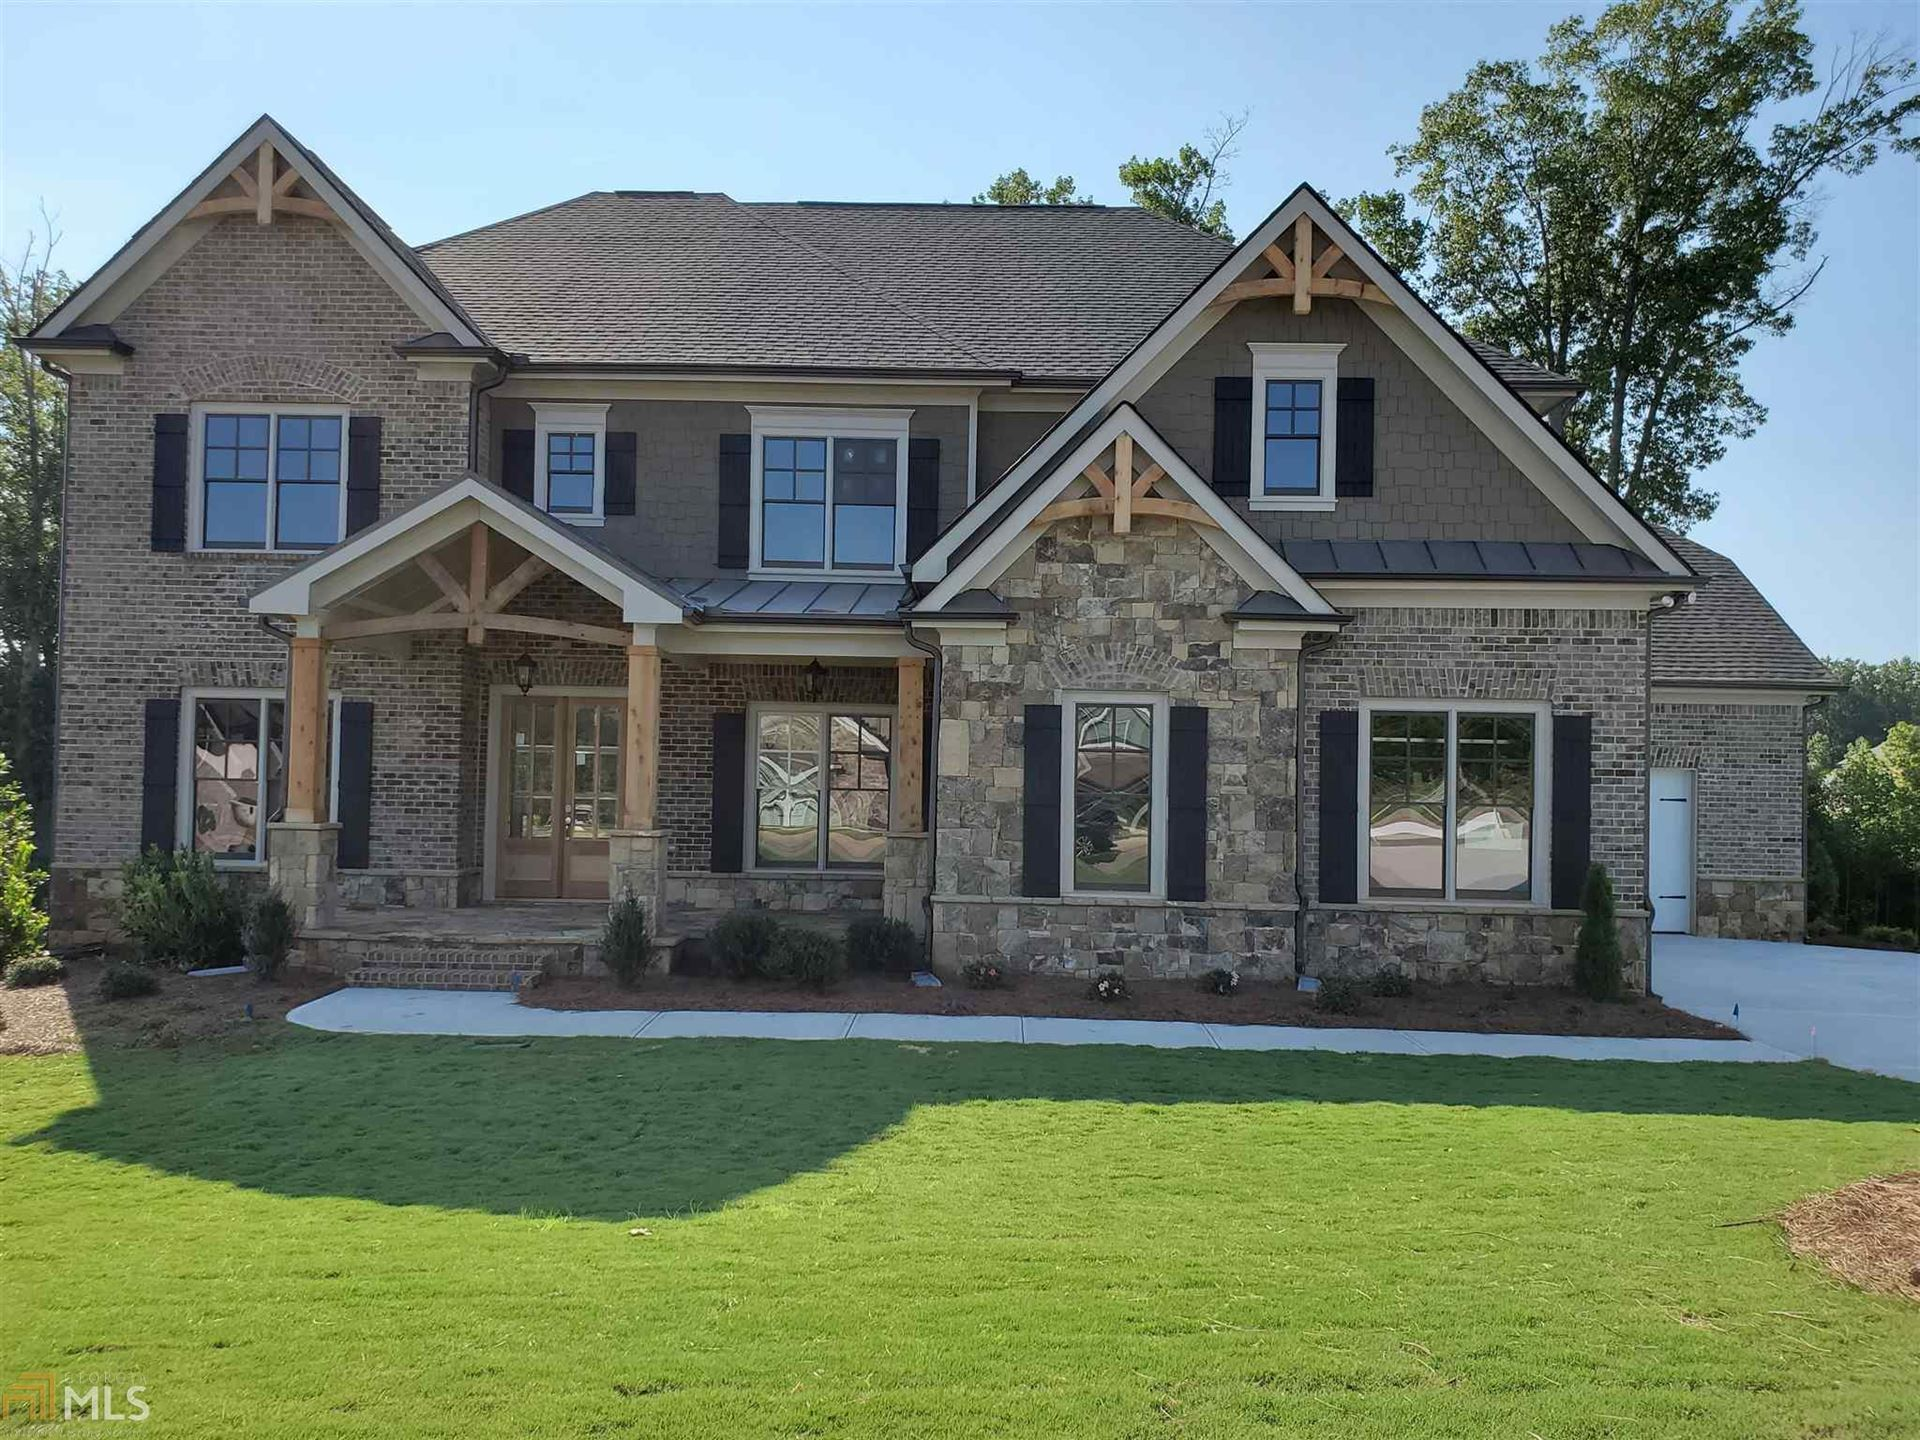 5470 Winding Ridge Trl, Buford, GA 30518 - #: 8716371